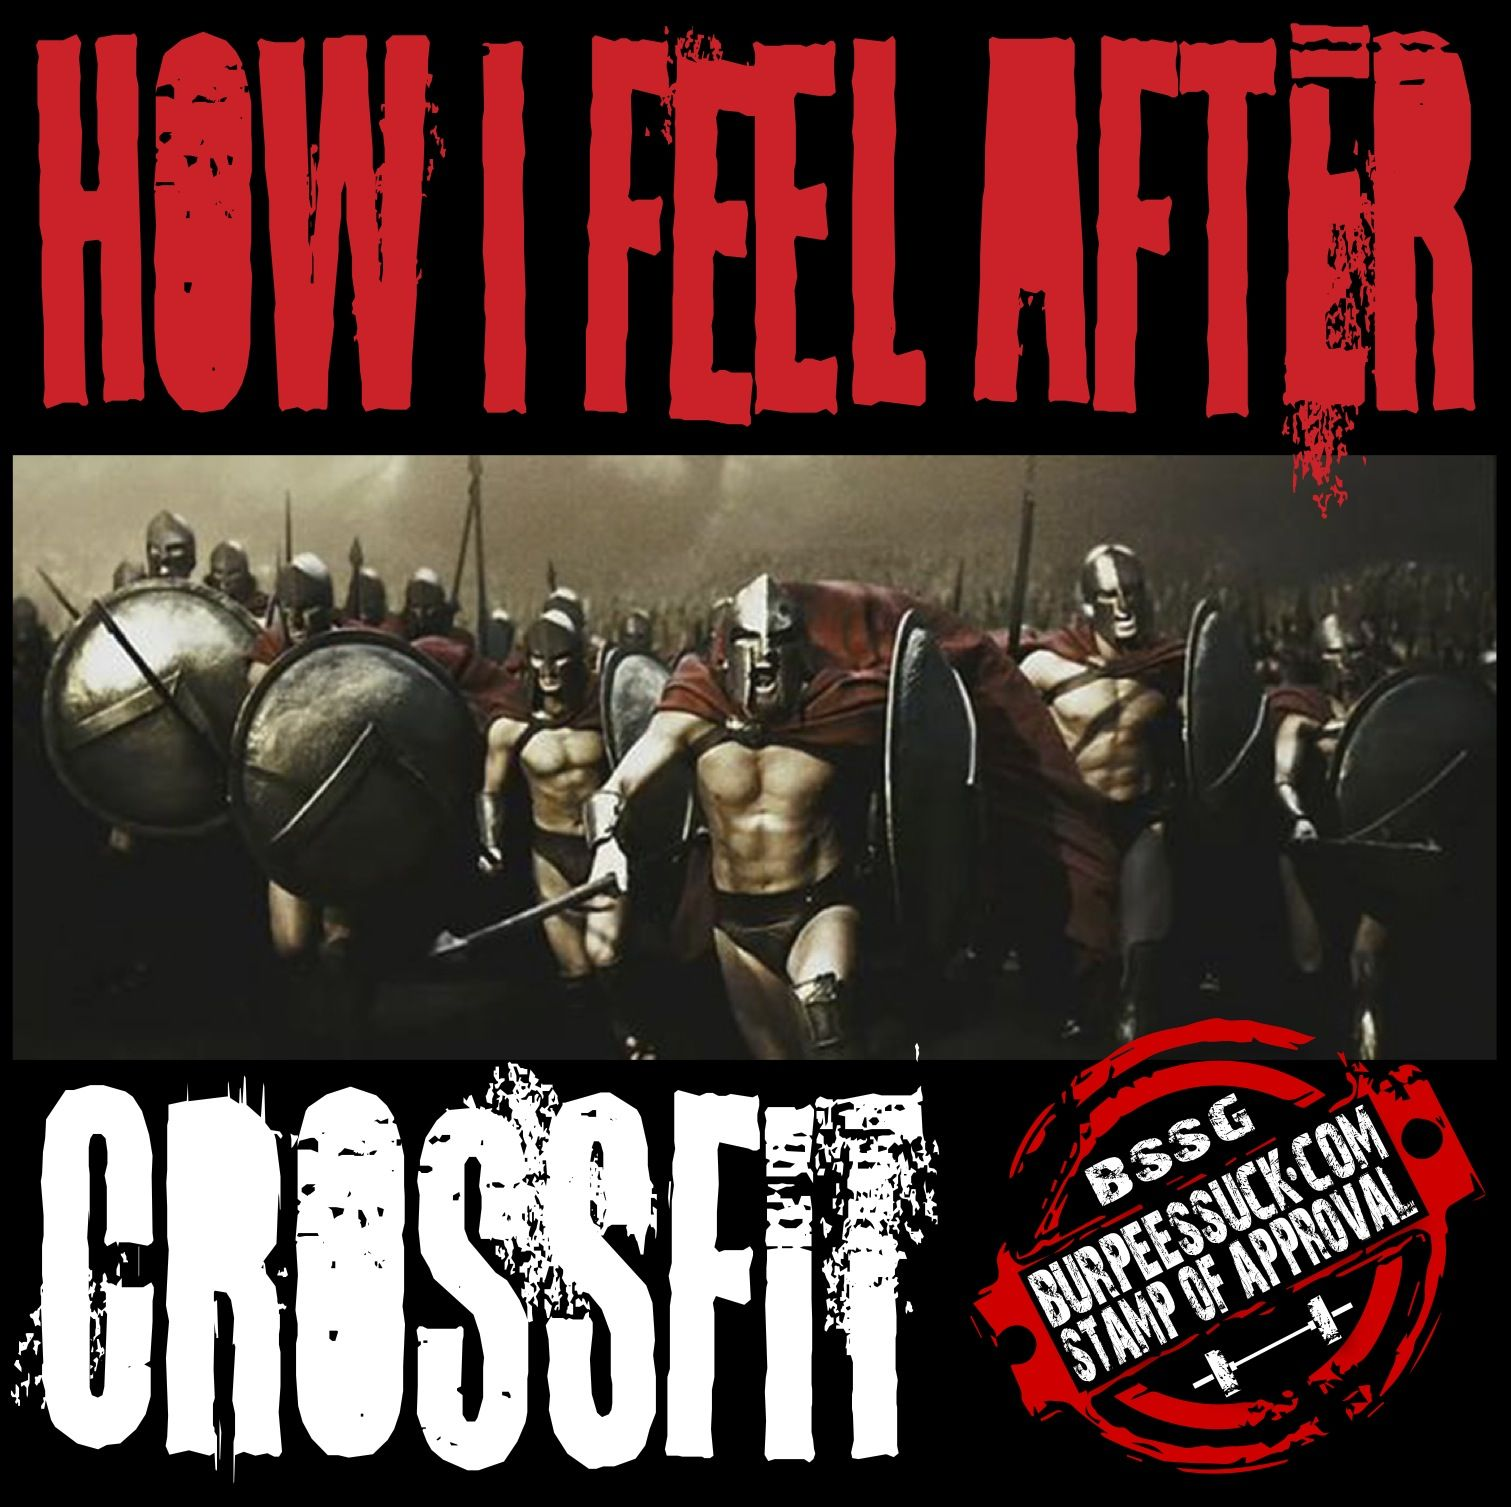 After Crossfit!